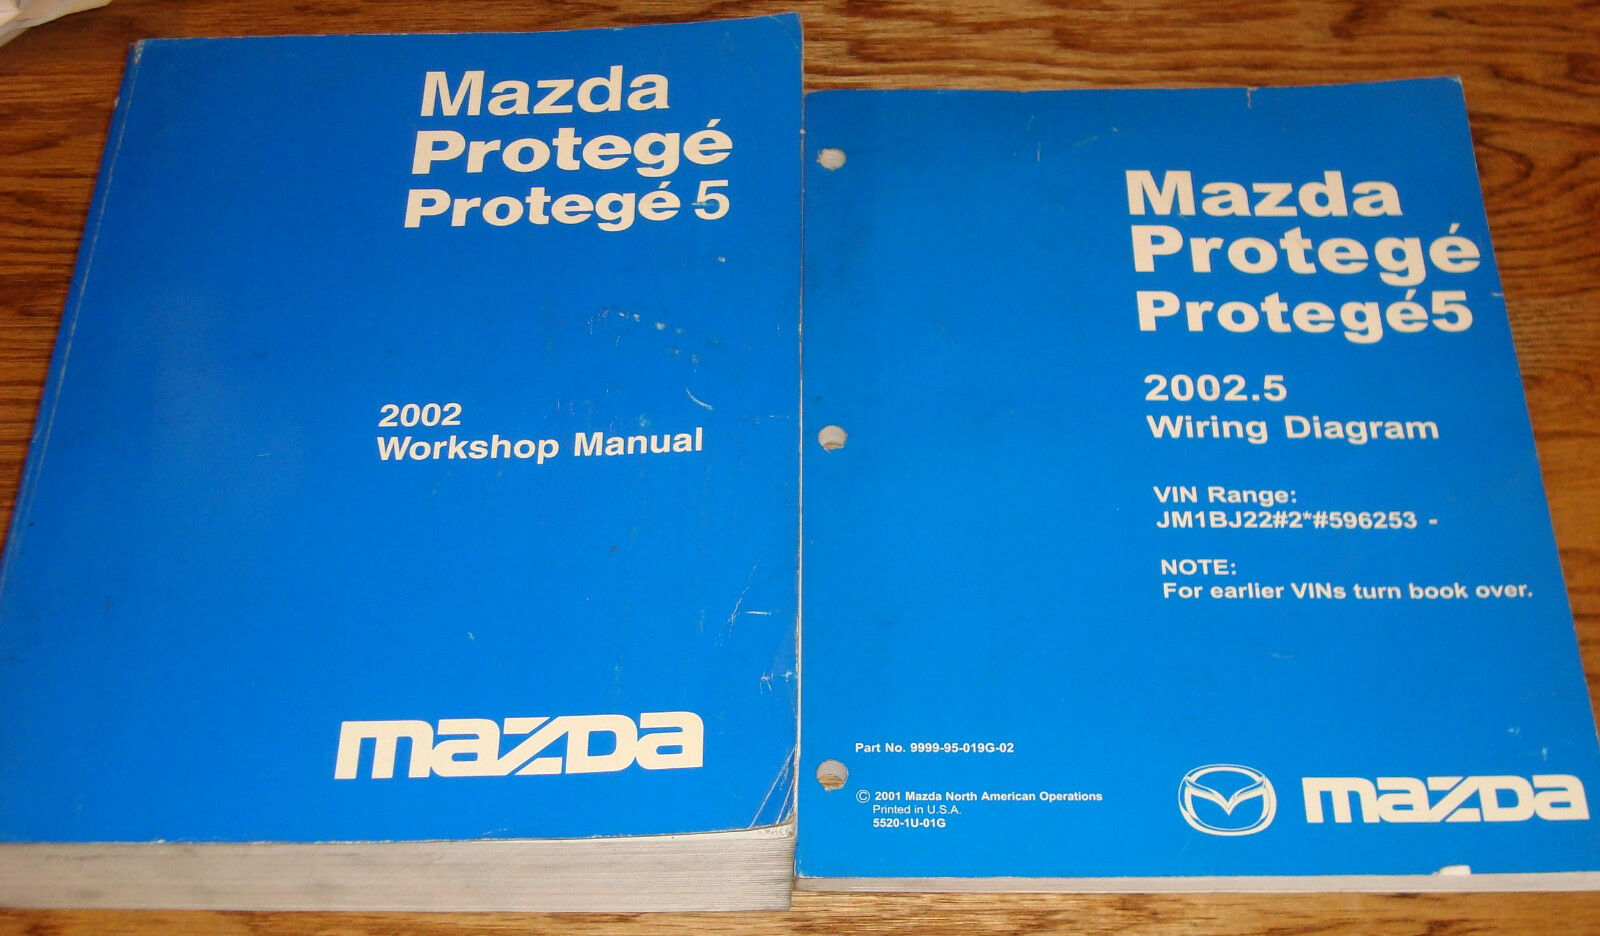 2002 Mazda Protege Protege5 Shop Service Manual 20025 Wiring Radio Diagram Set 1 Of 1only Available